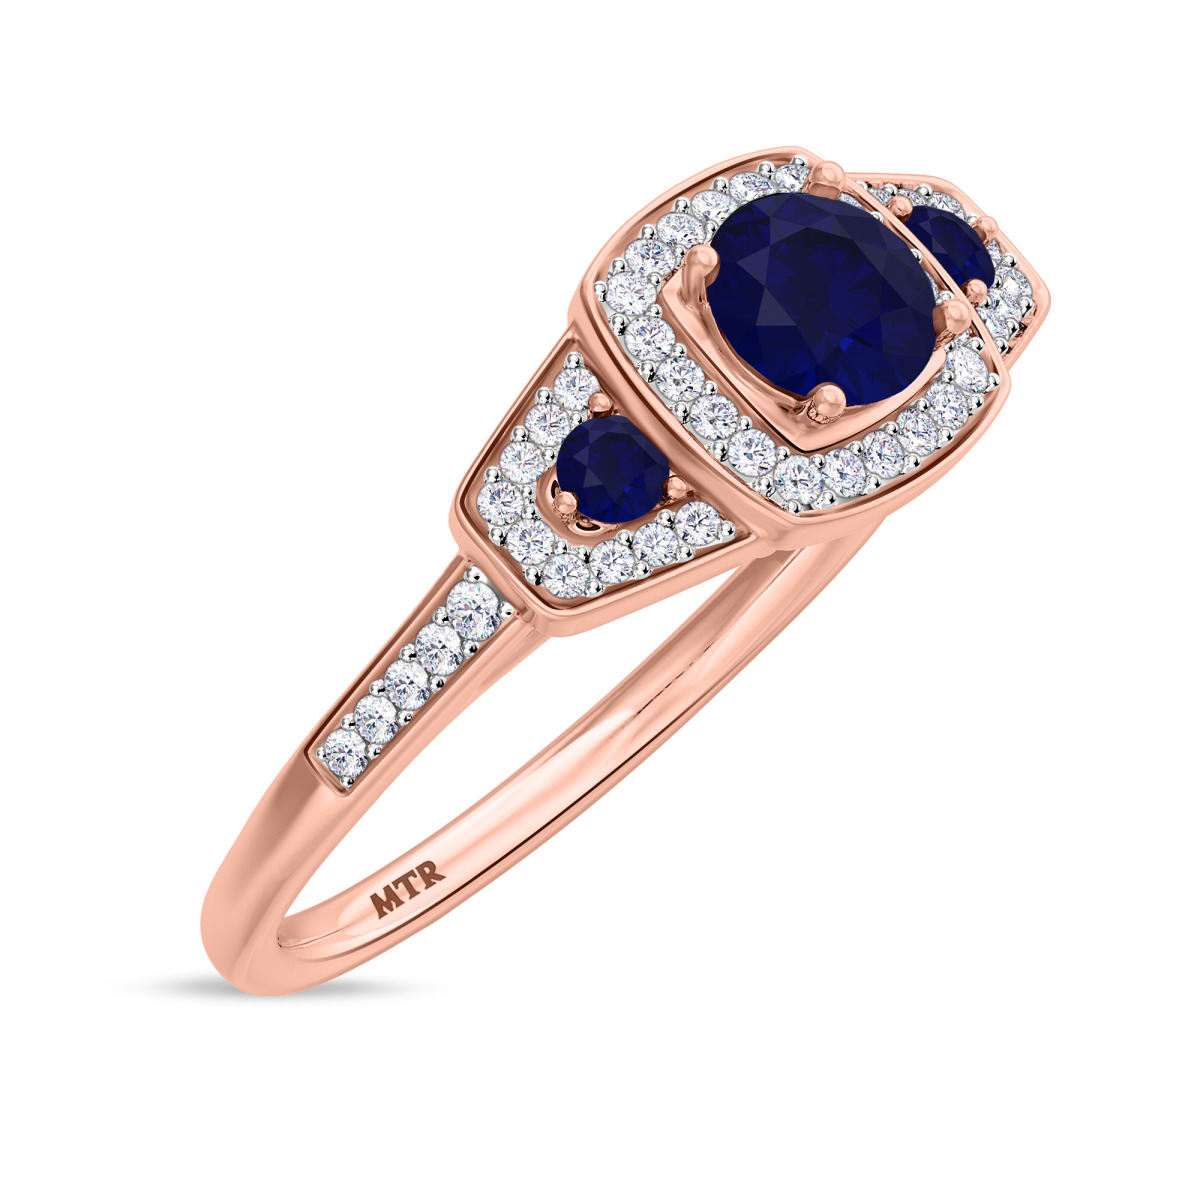 7/8 CT. T.W. Sapphire Engagement Ring 14K Rose Gold